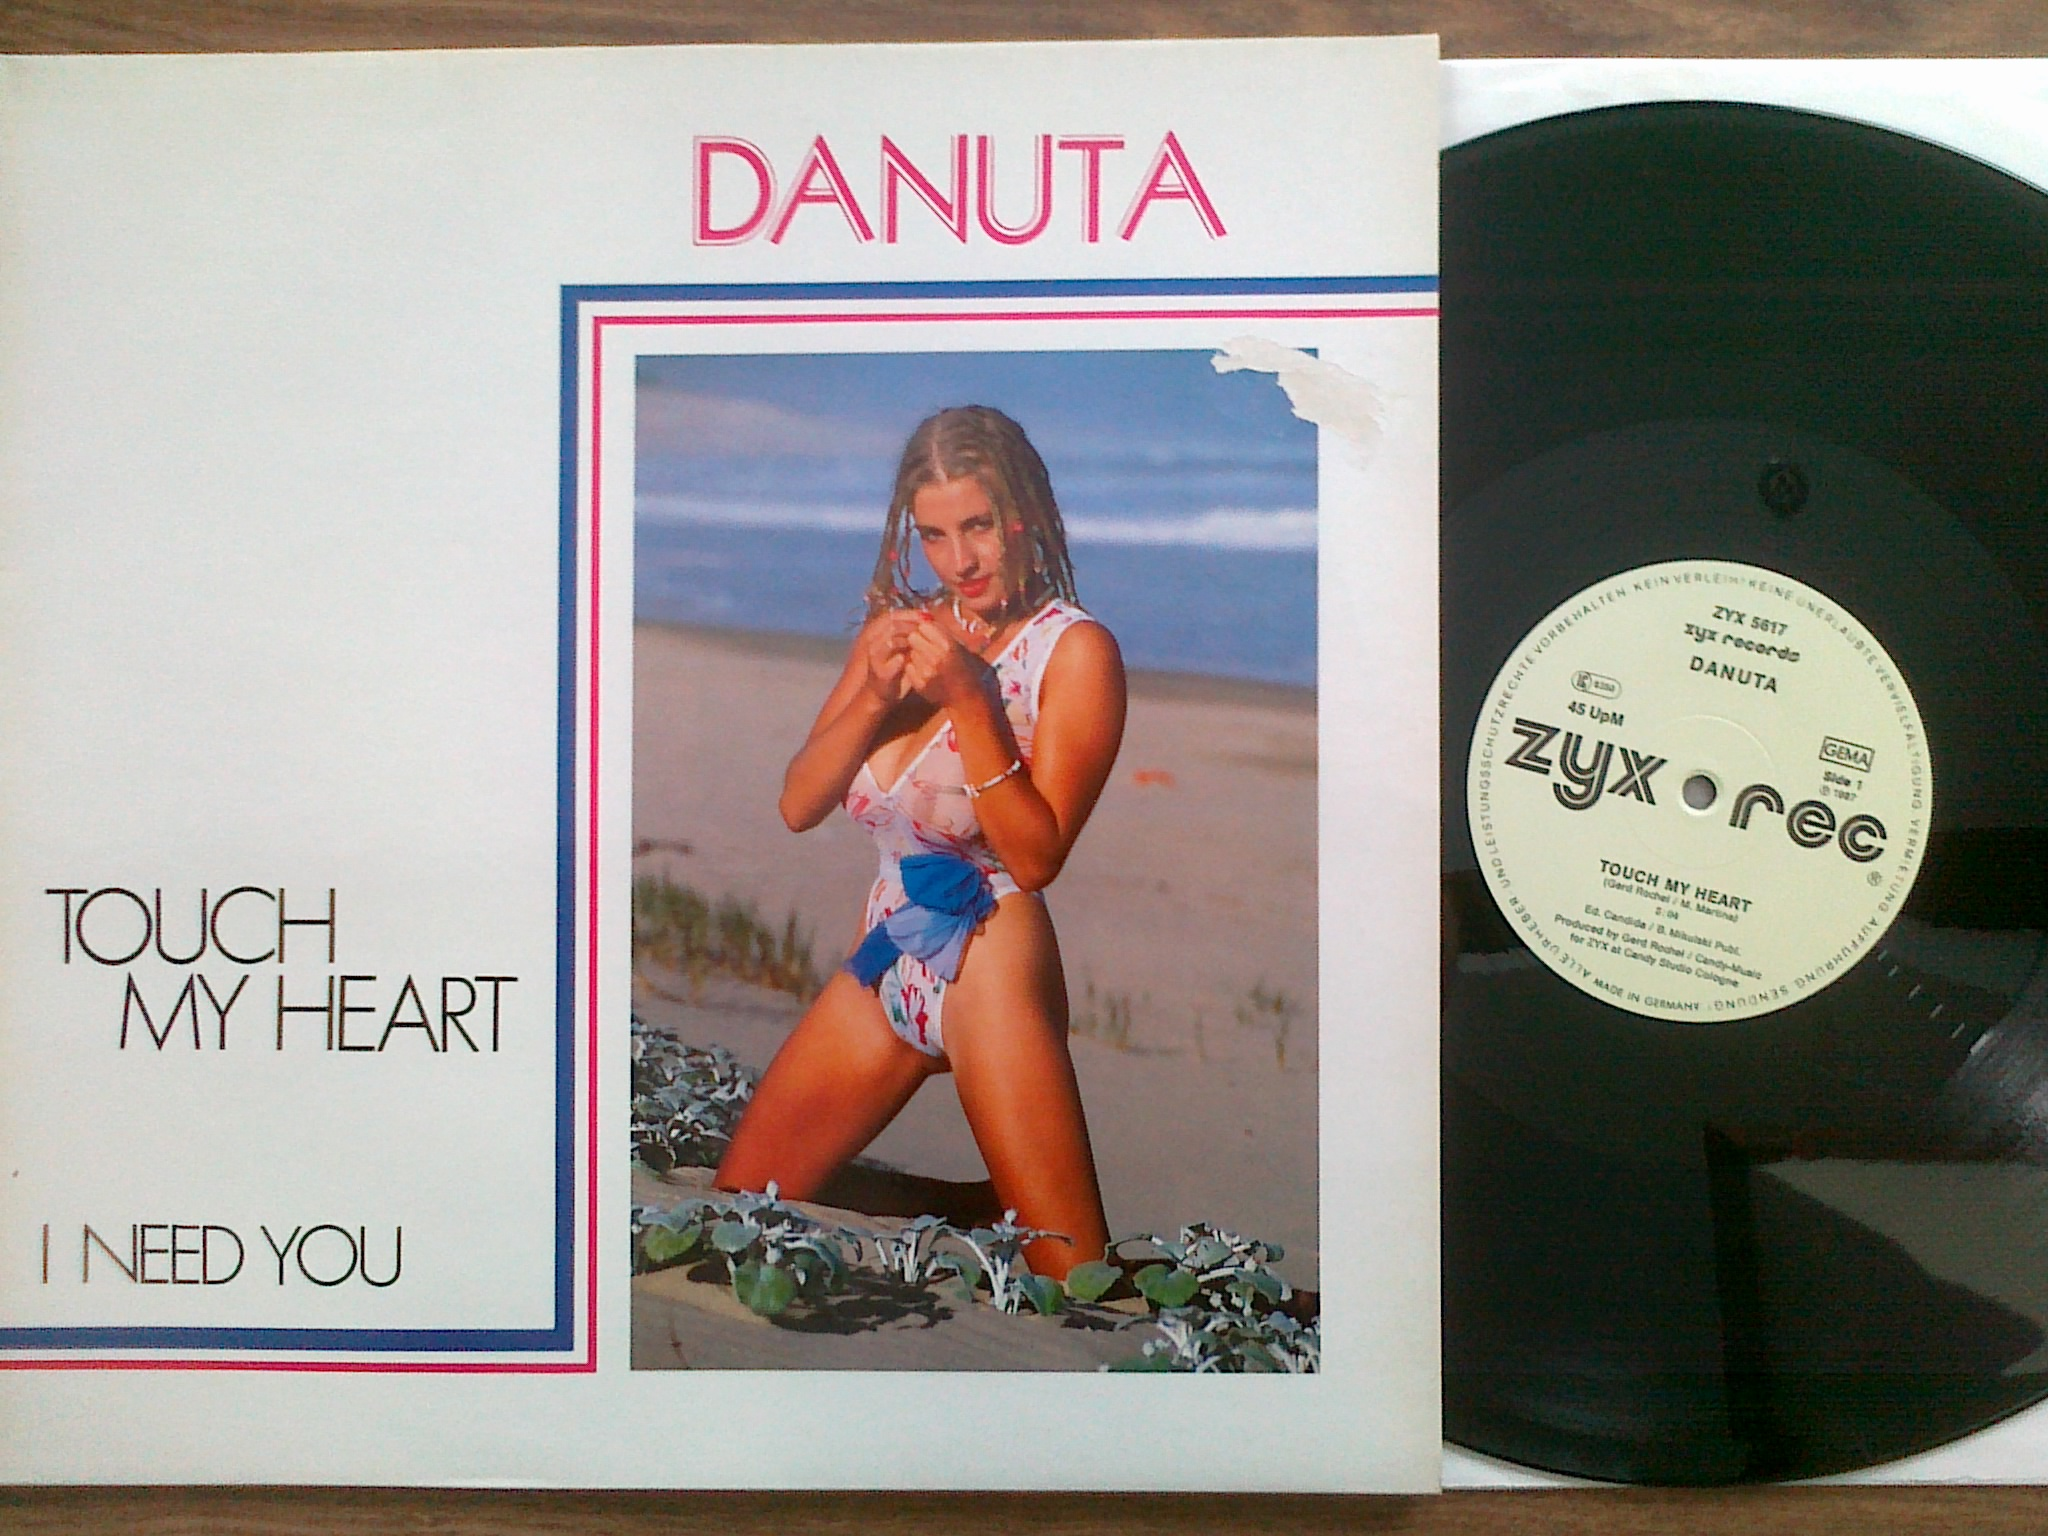 Danuta - Touch my heart